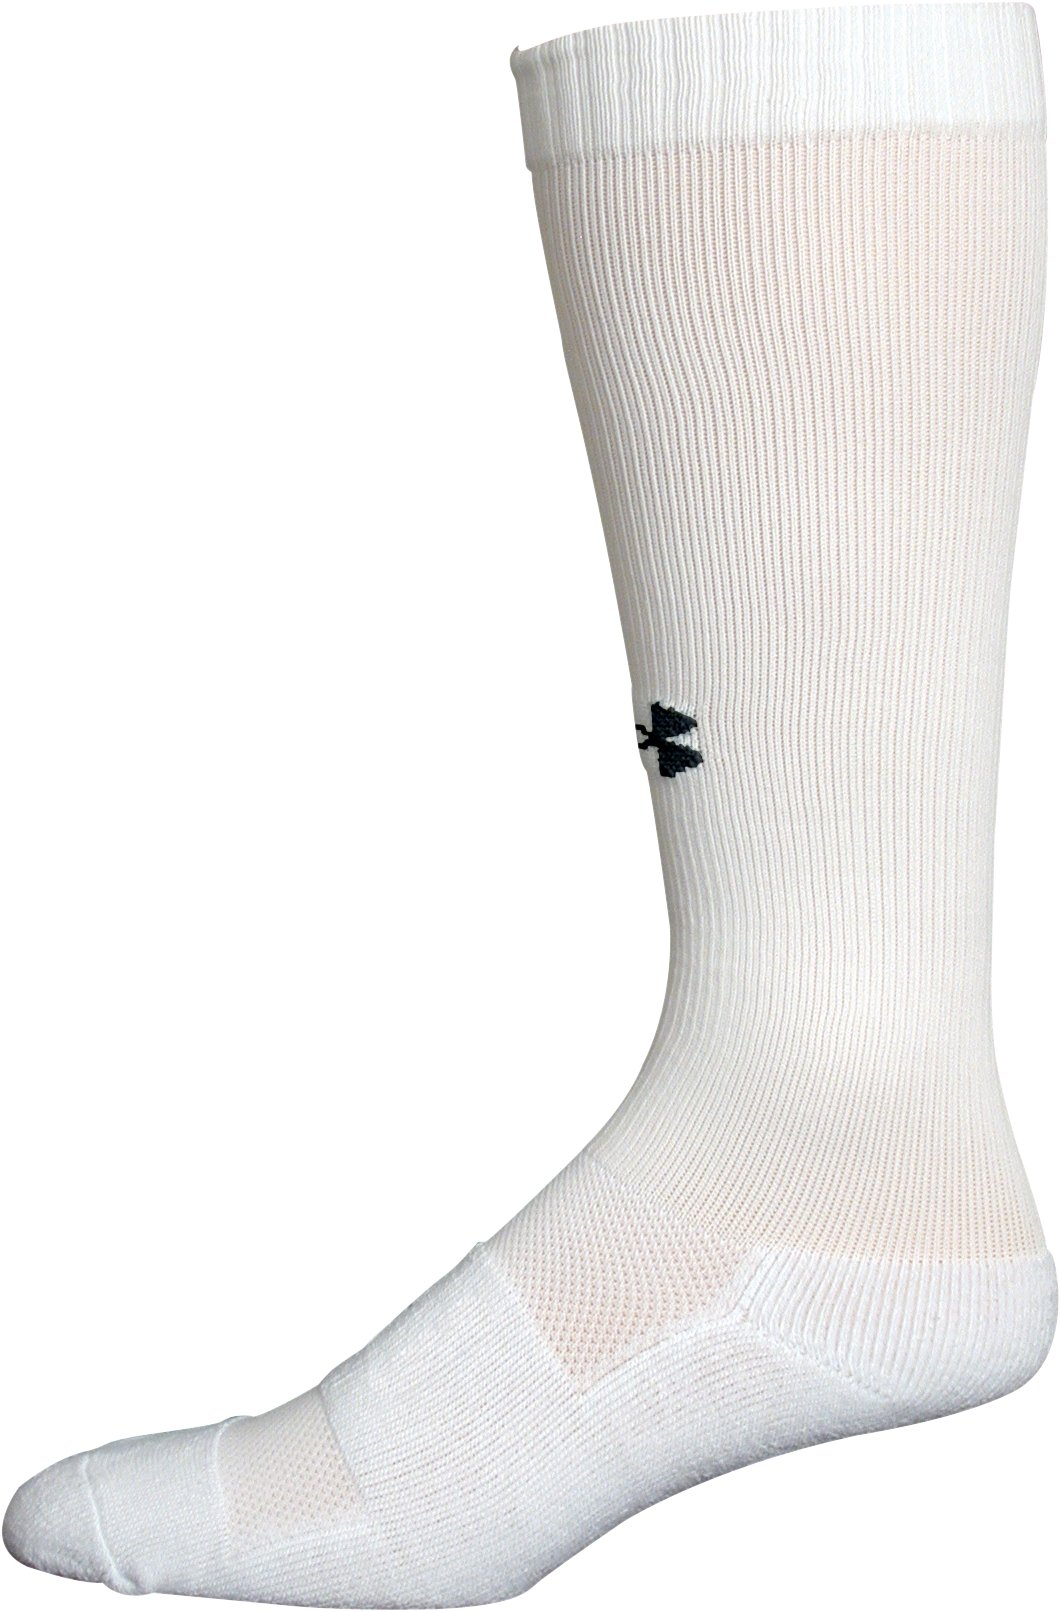 Youth AllSport Socks, White, zoomed image